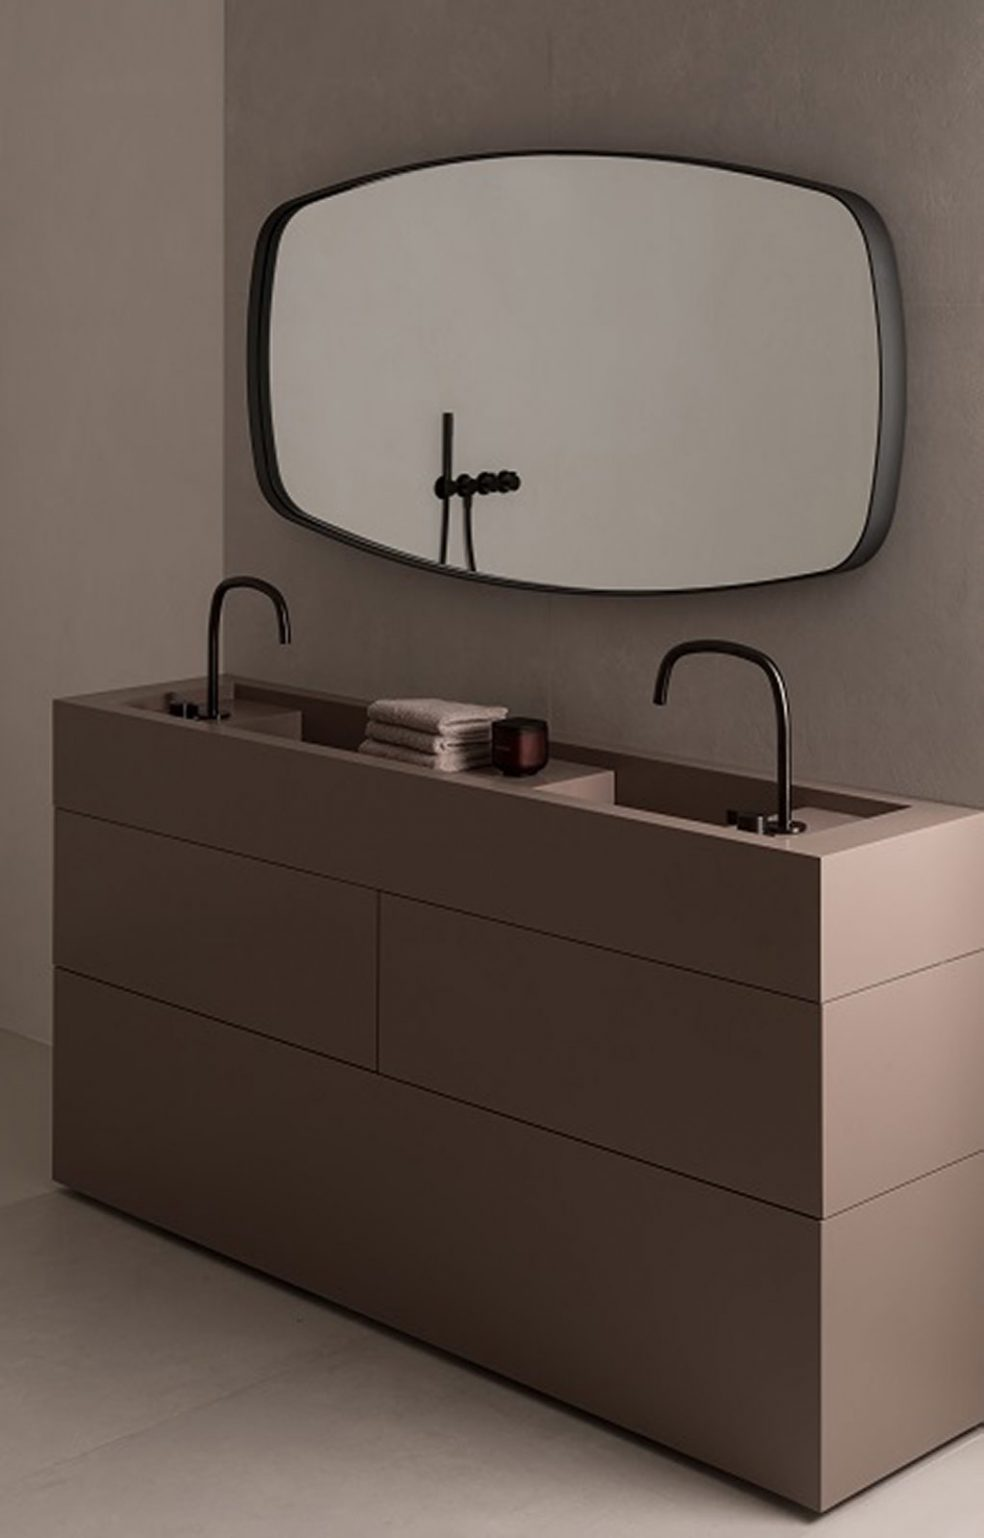 Douglas & Jones tegelseries | Badkamer BLEND TILE Piet Boon | Stek Magazine